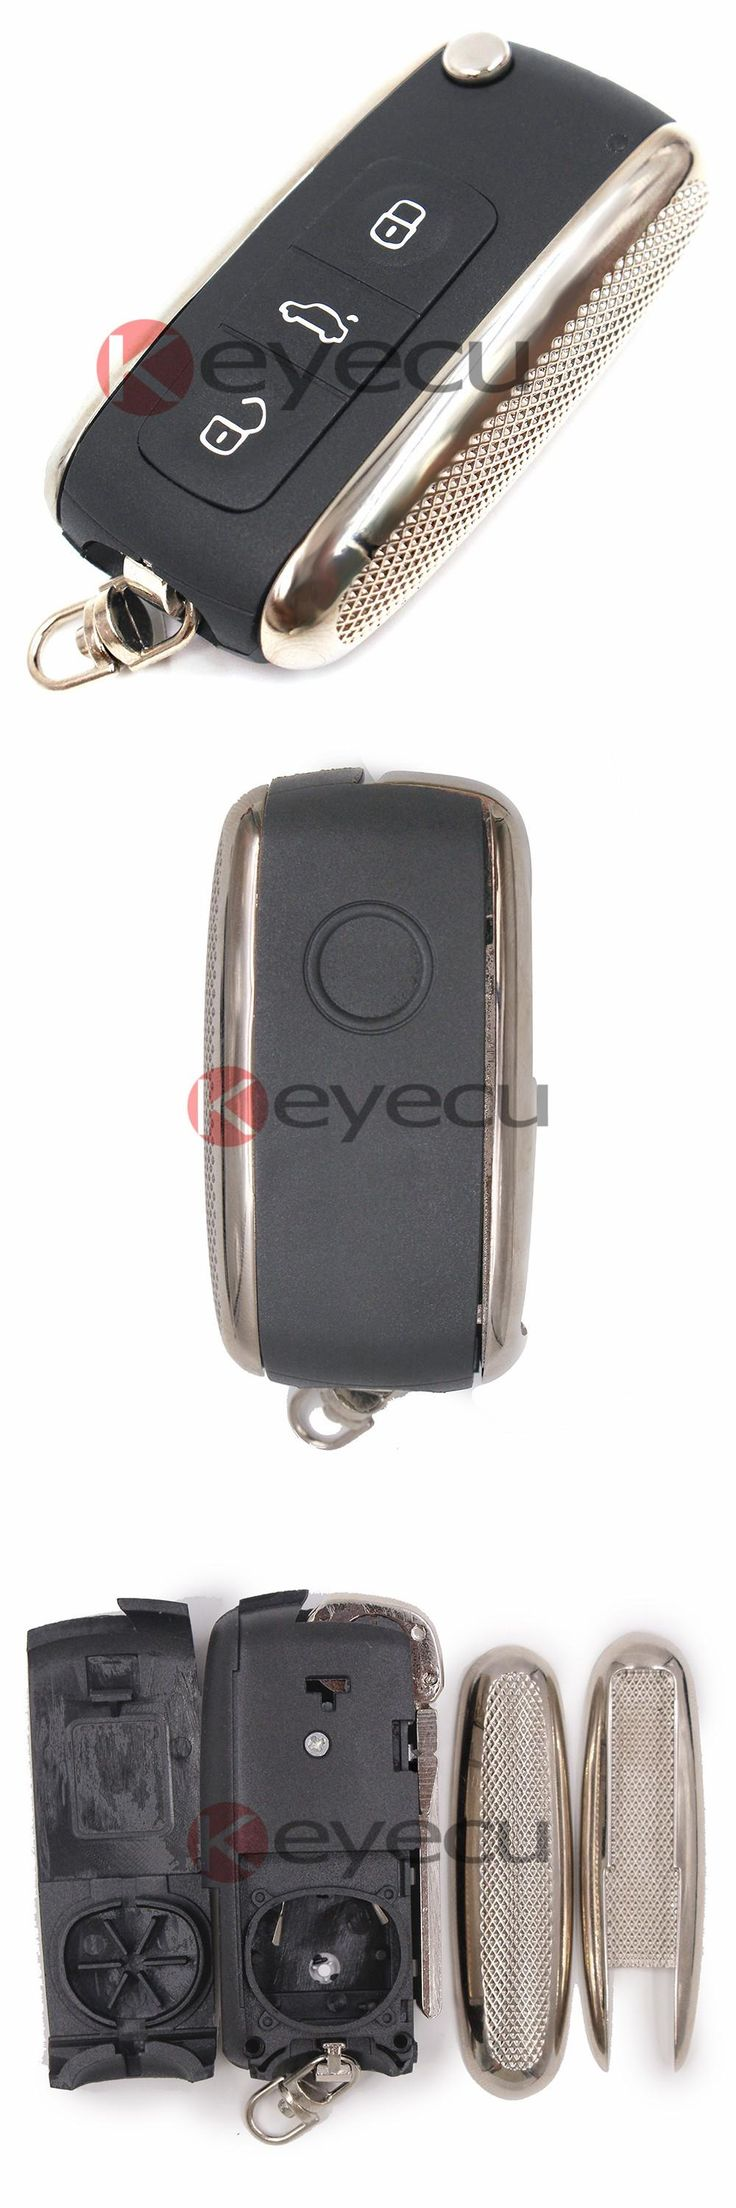 [Visit to Buy] 3 Buttons Modified Flip Remote Key Shell for Volkswagen Phaeton Touareg (Indicator Led in the upper) #Advertisement